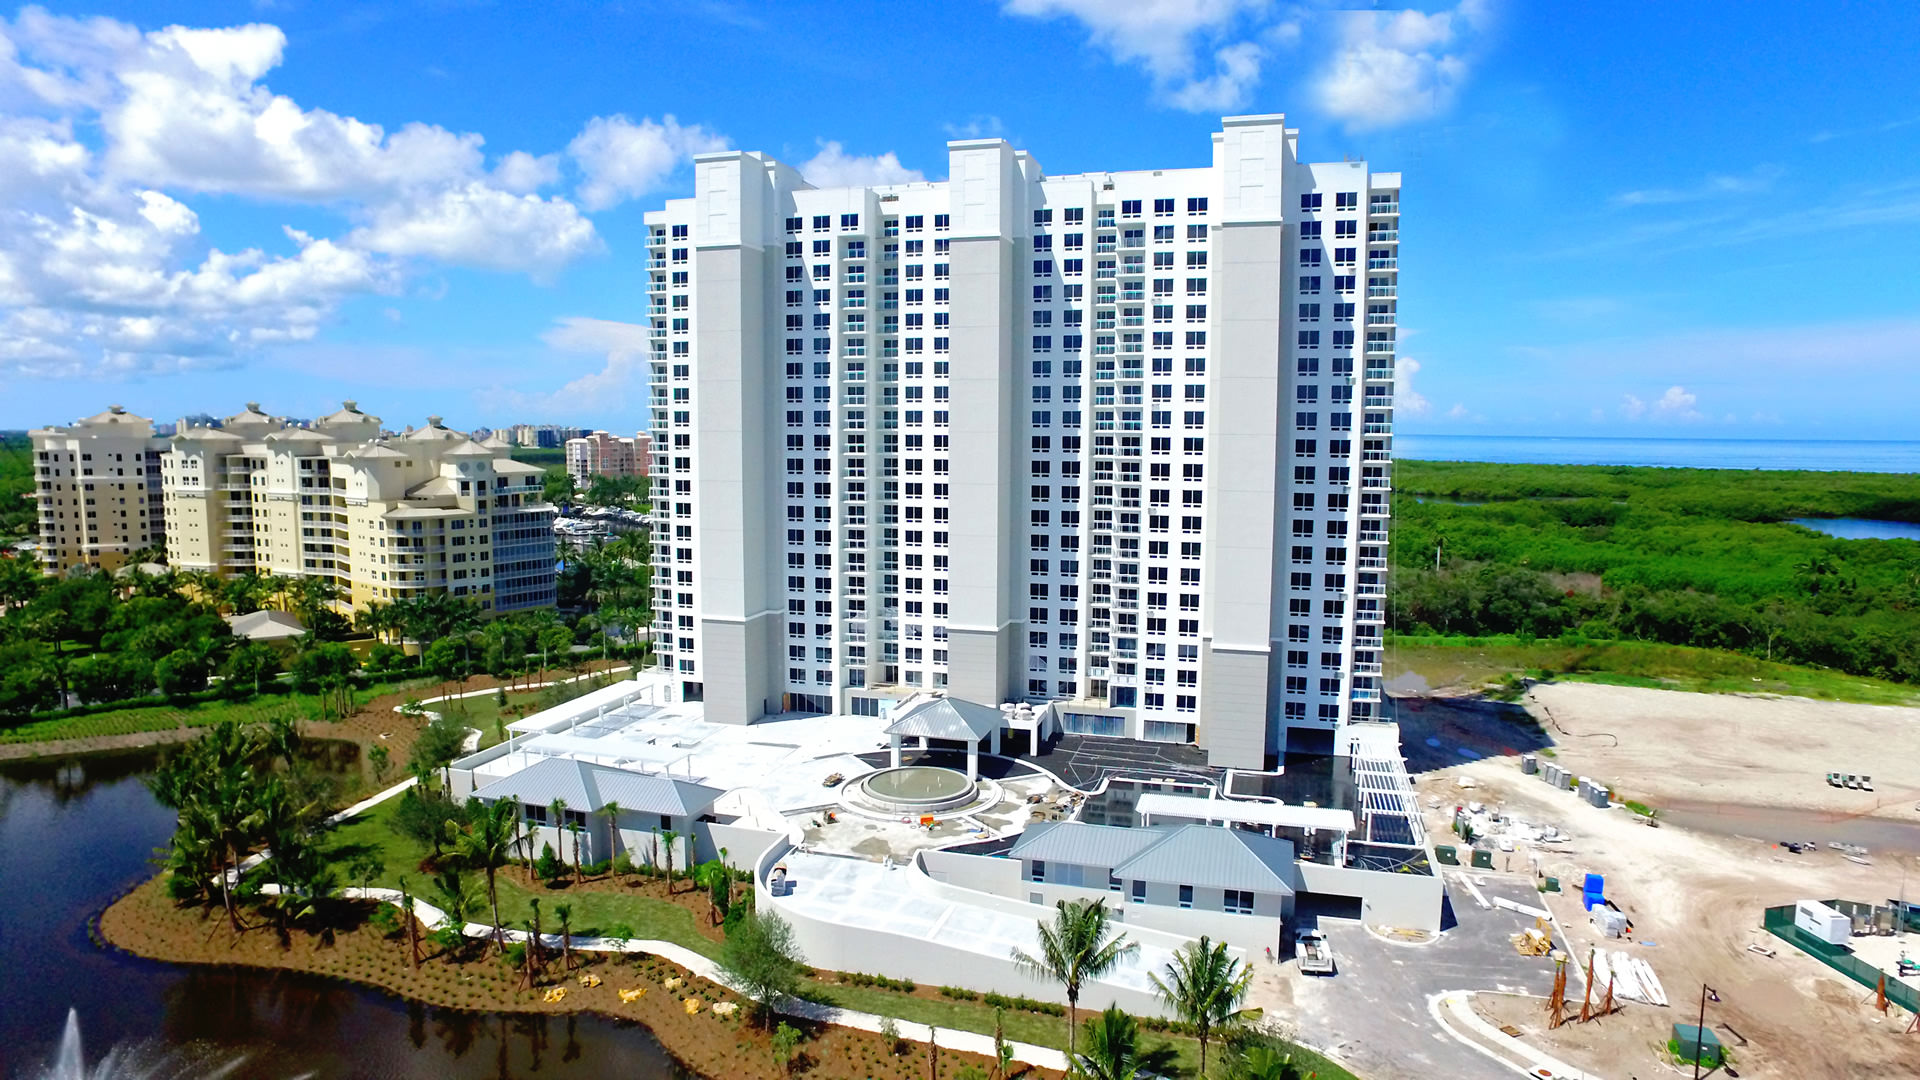 KALEA BAY NEARS SELL OUT TOWER 100